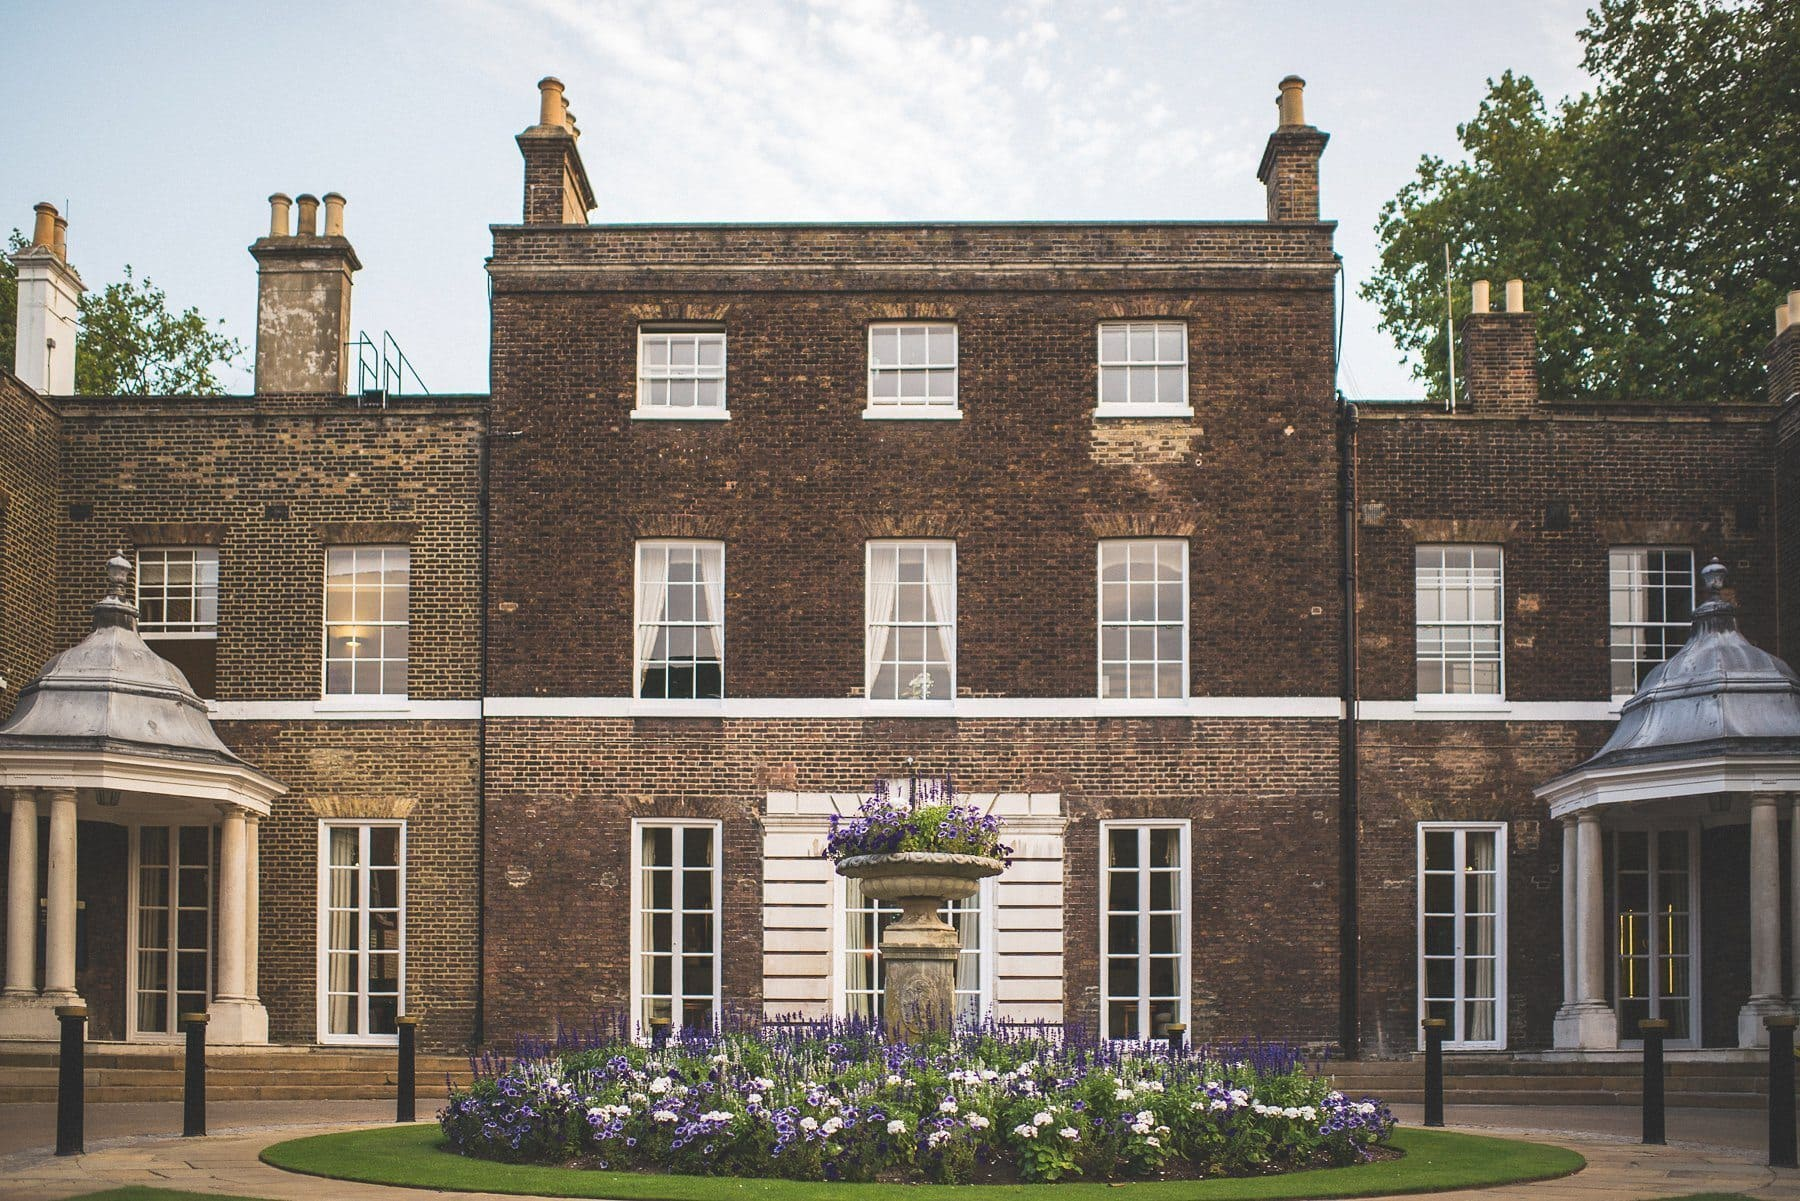 The Hurlingham Club Wedding venue in Chelsea in London